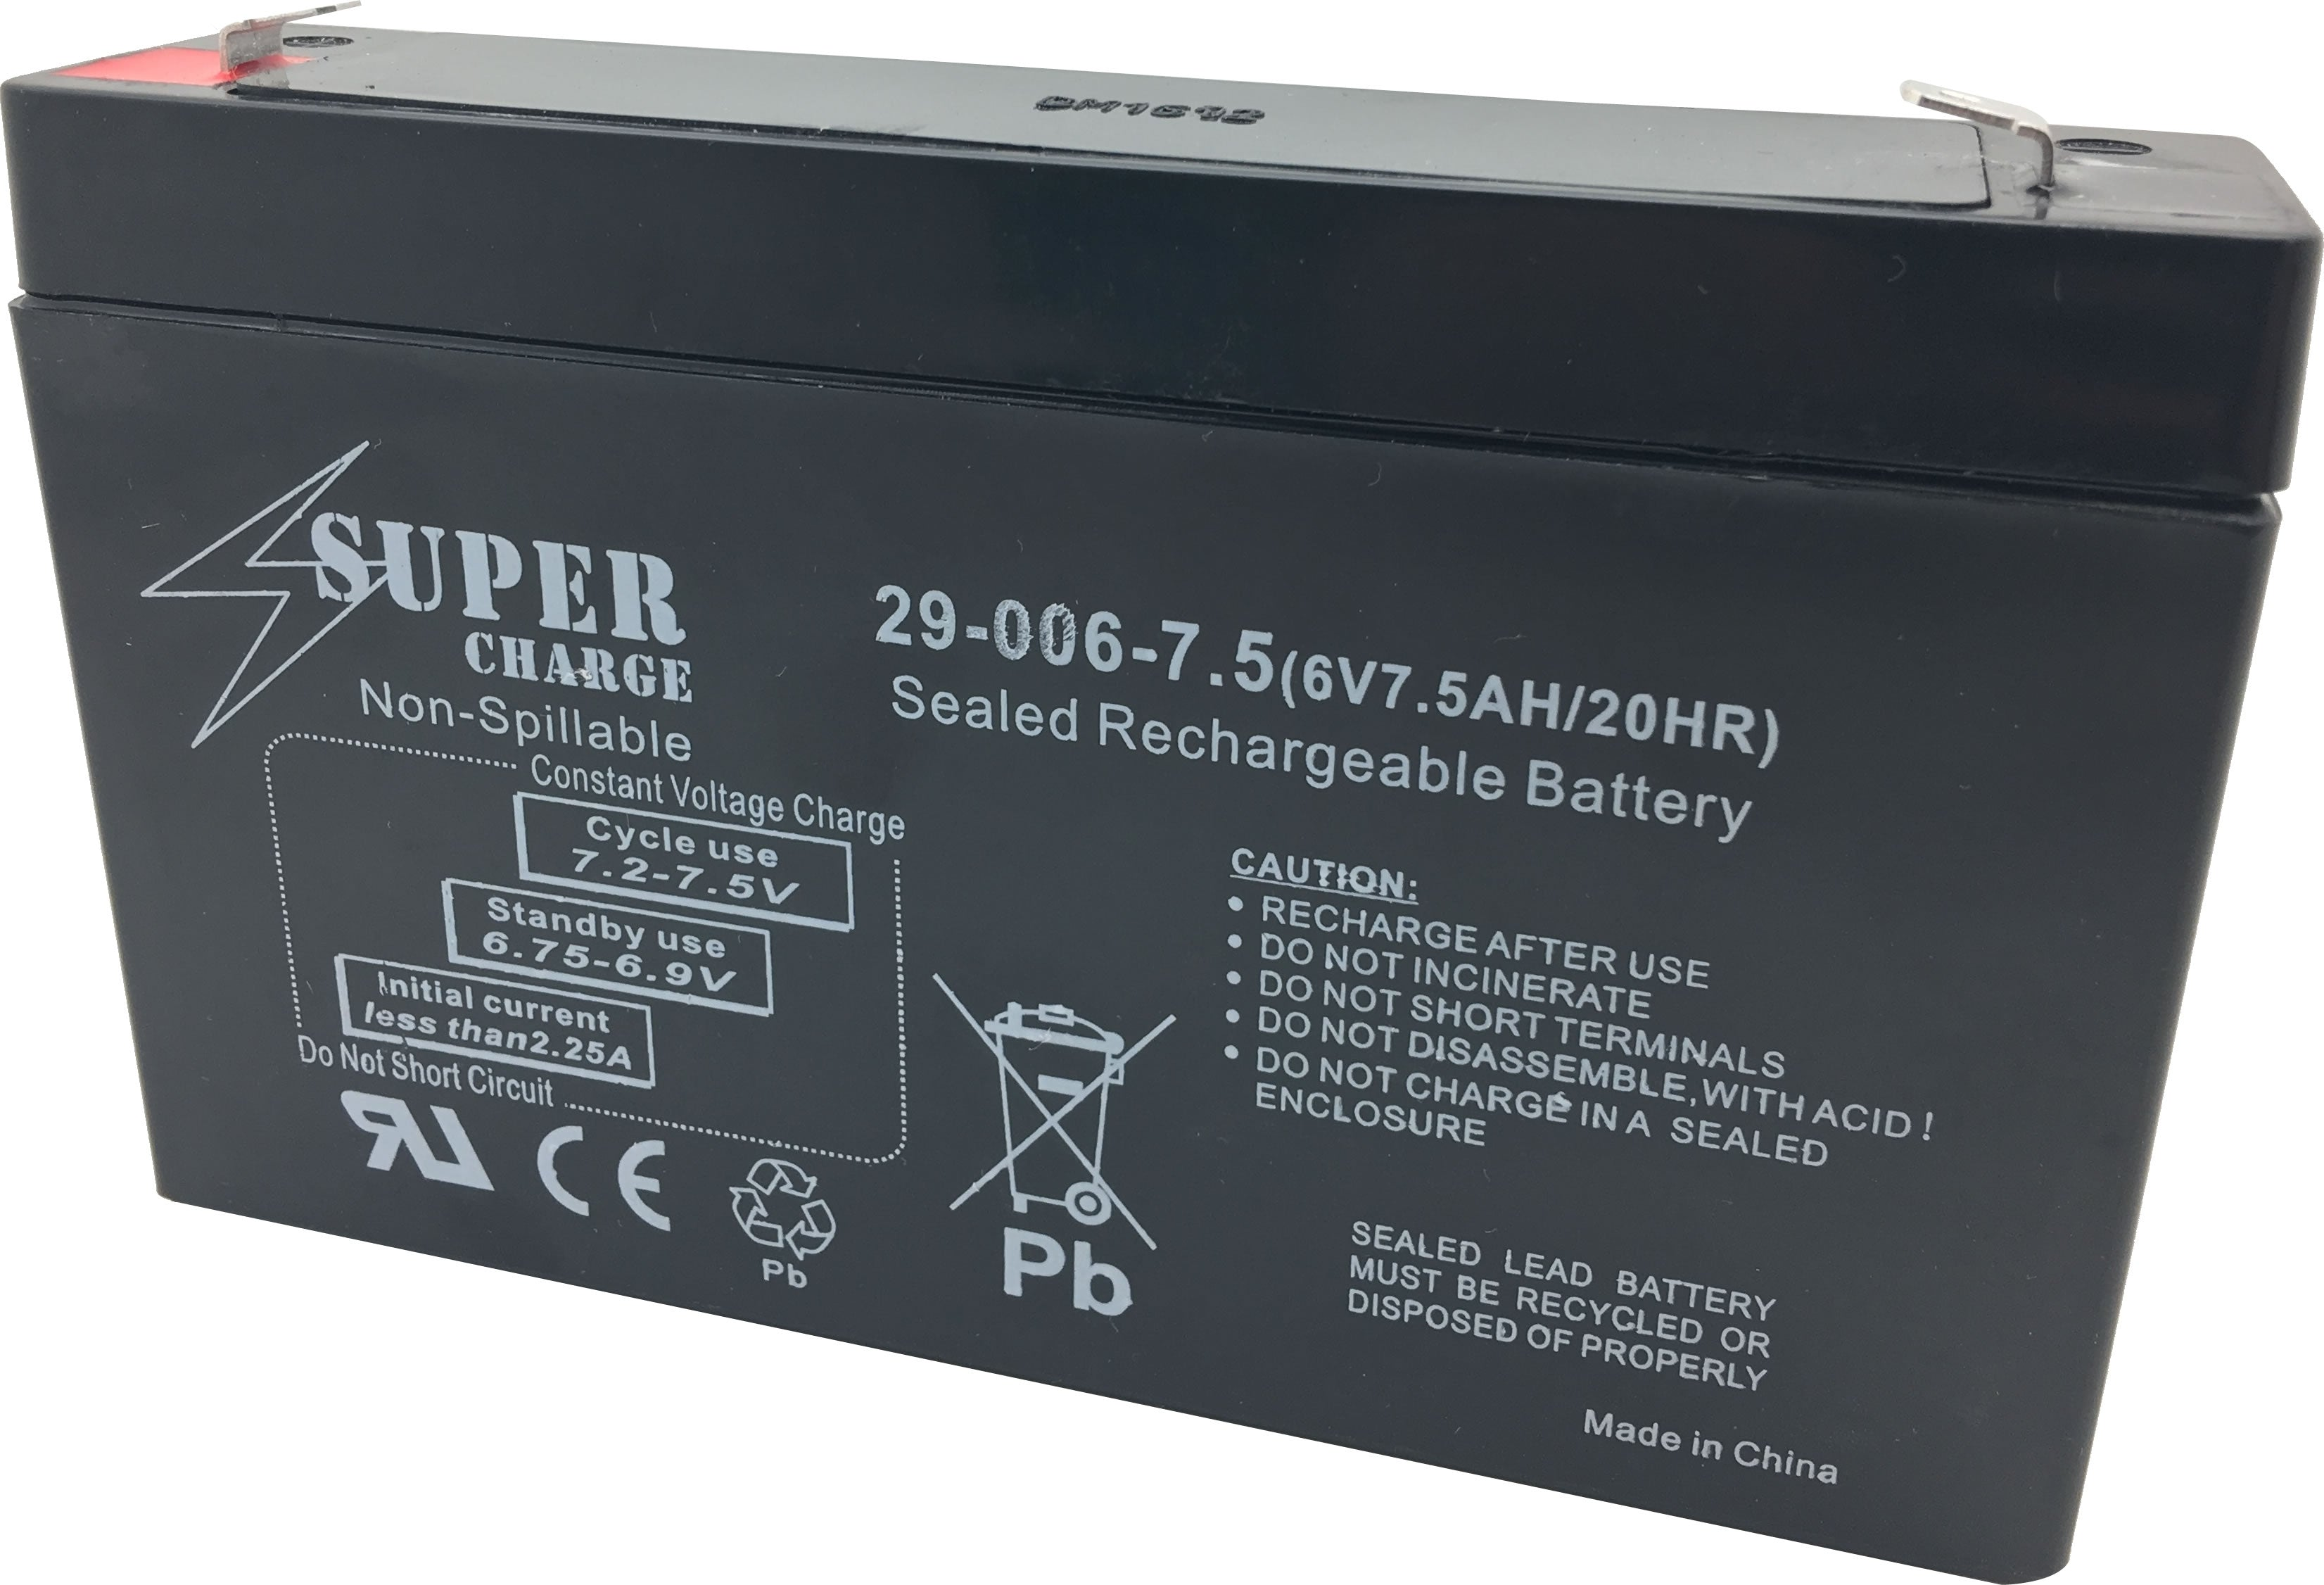 29-006-7.5 Rechargeable Battery 6V 7.5AH 20HR